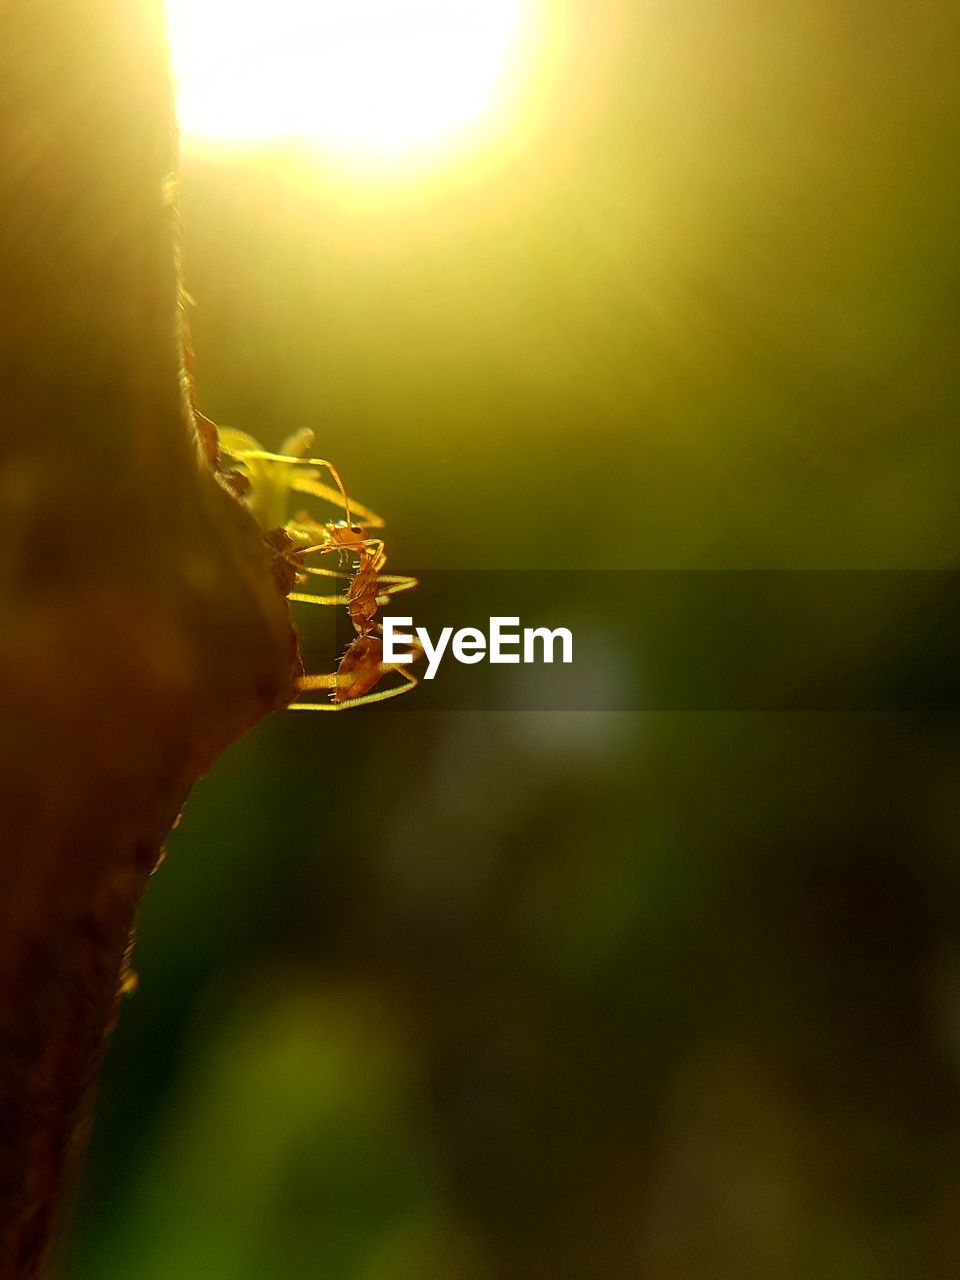 close-up, one animal, invertebrate, animals in the wild, animal themes, animal wildlife, animal, plant, insect, nature, day, selective focus, outdoors, no people, sunlight, focus on foreground, beauty in nature, growth, arthropod